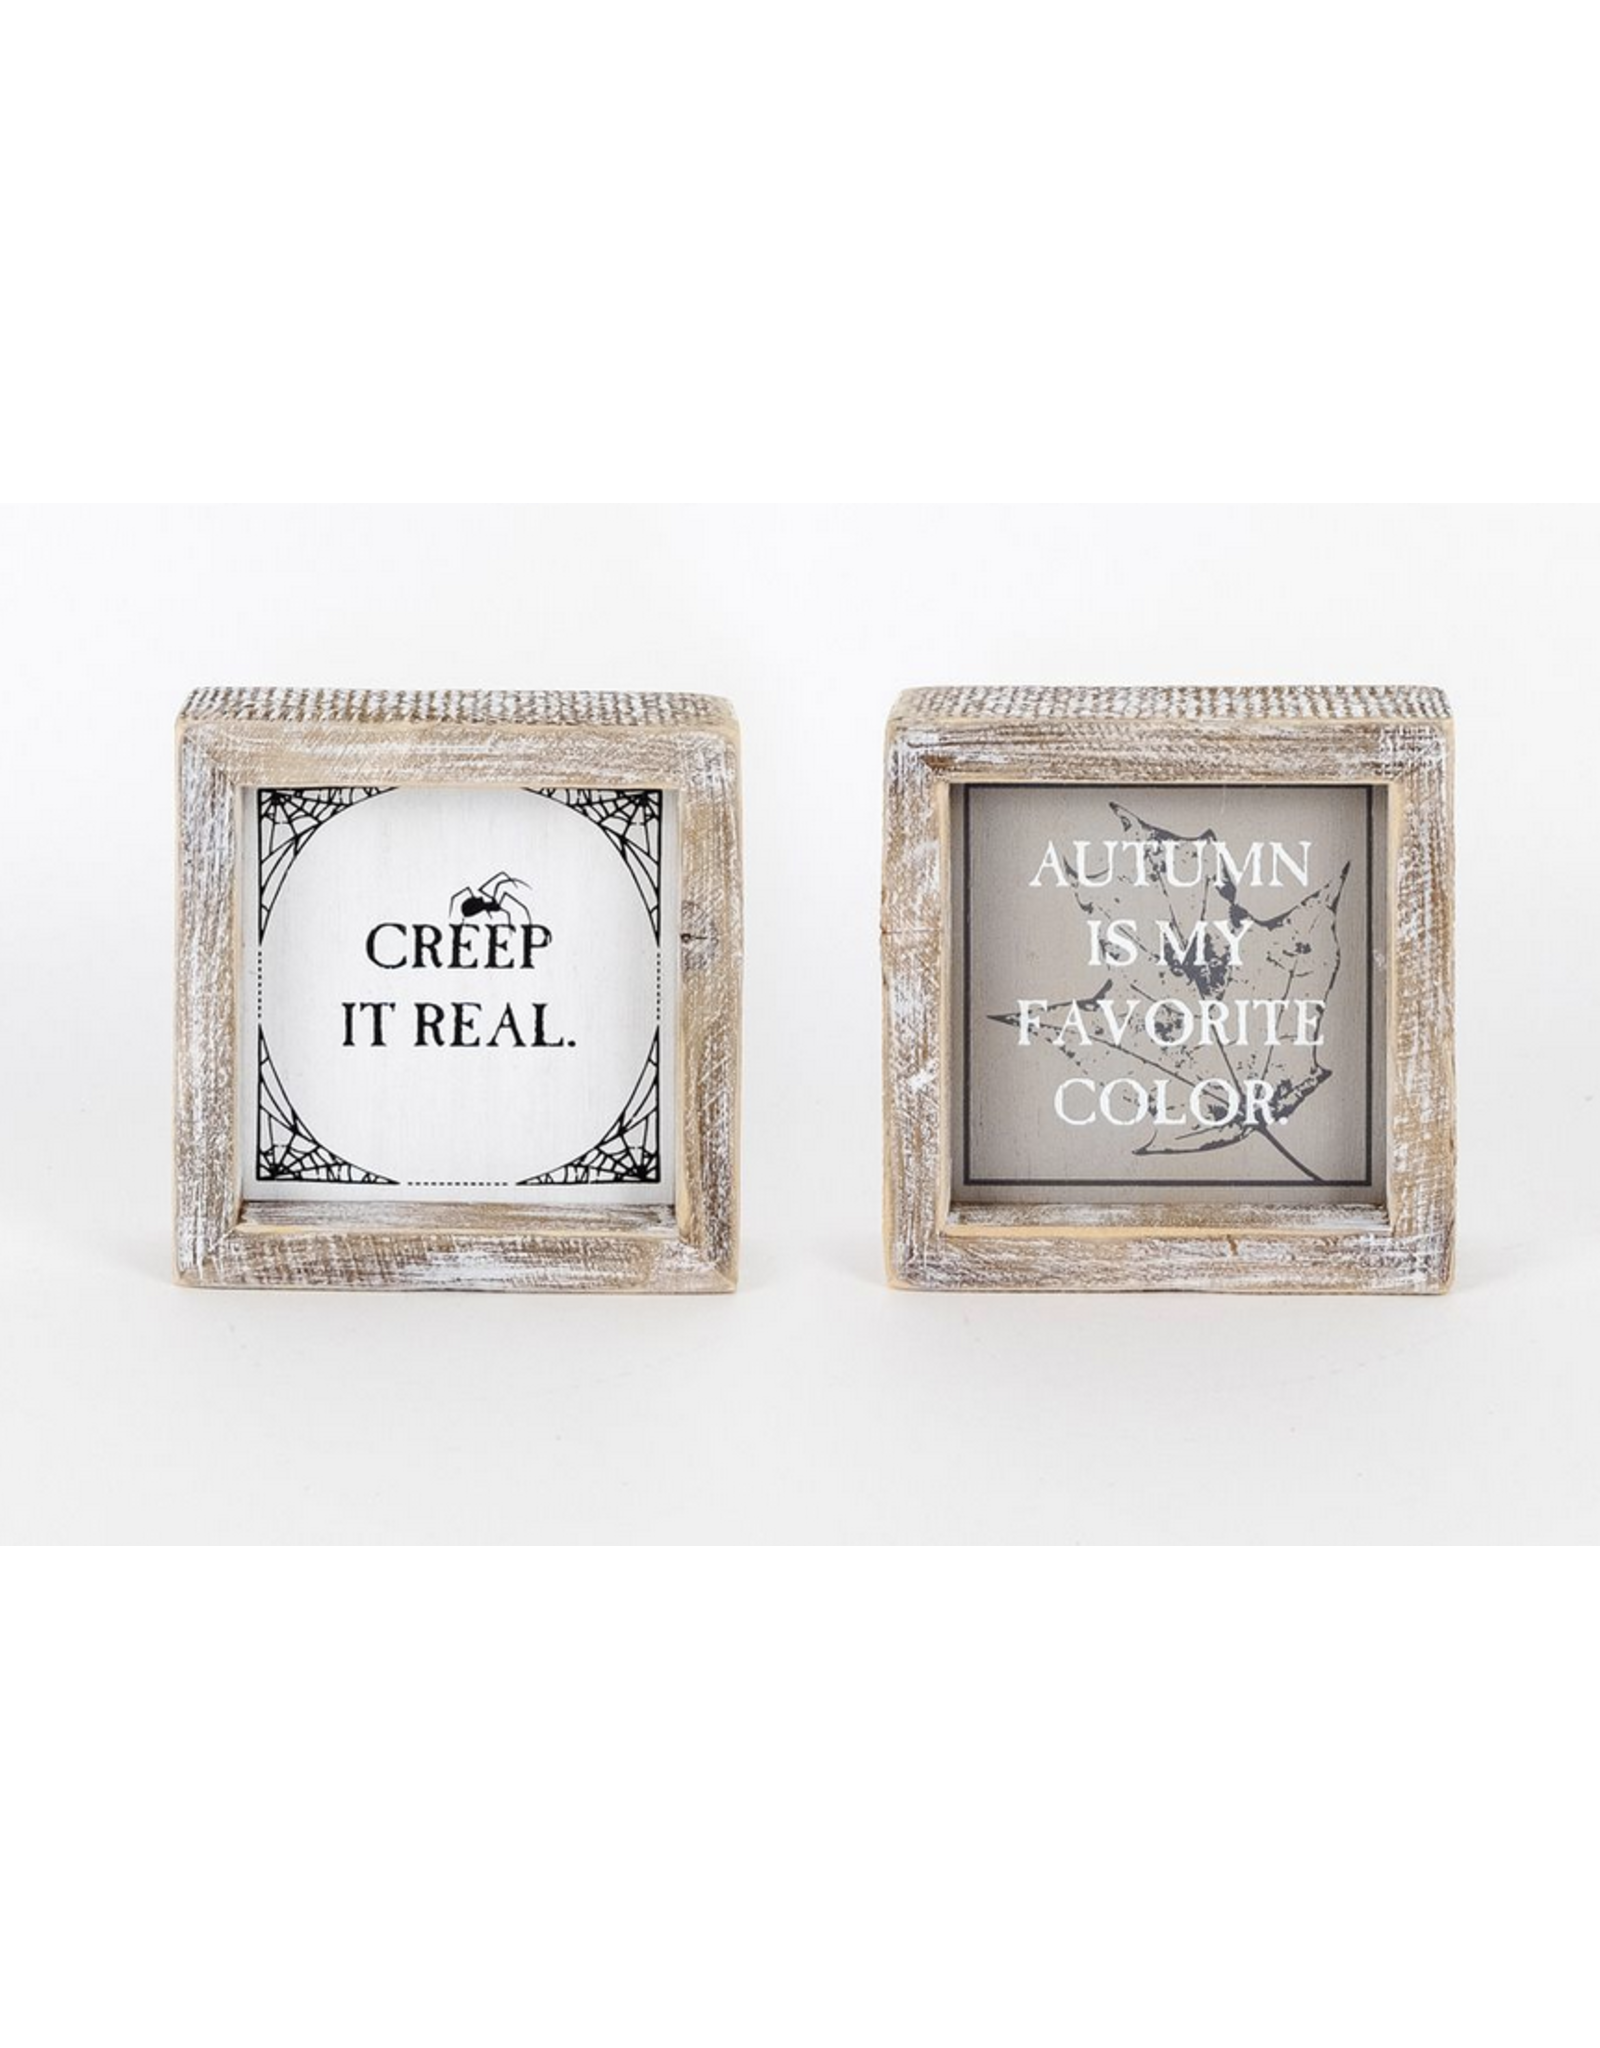 Adams & Co. Autumn Color/Creep it Real Reversible Sign 5 x 5